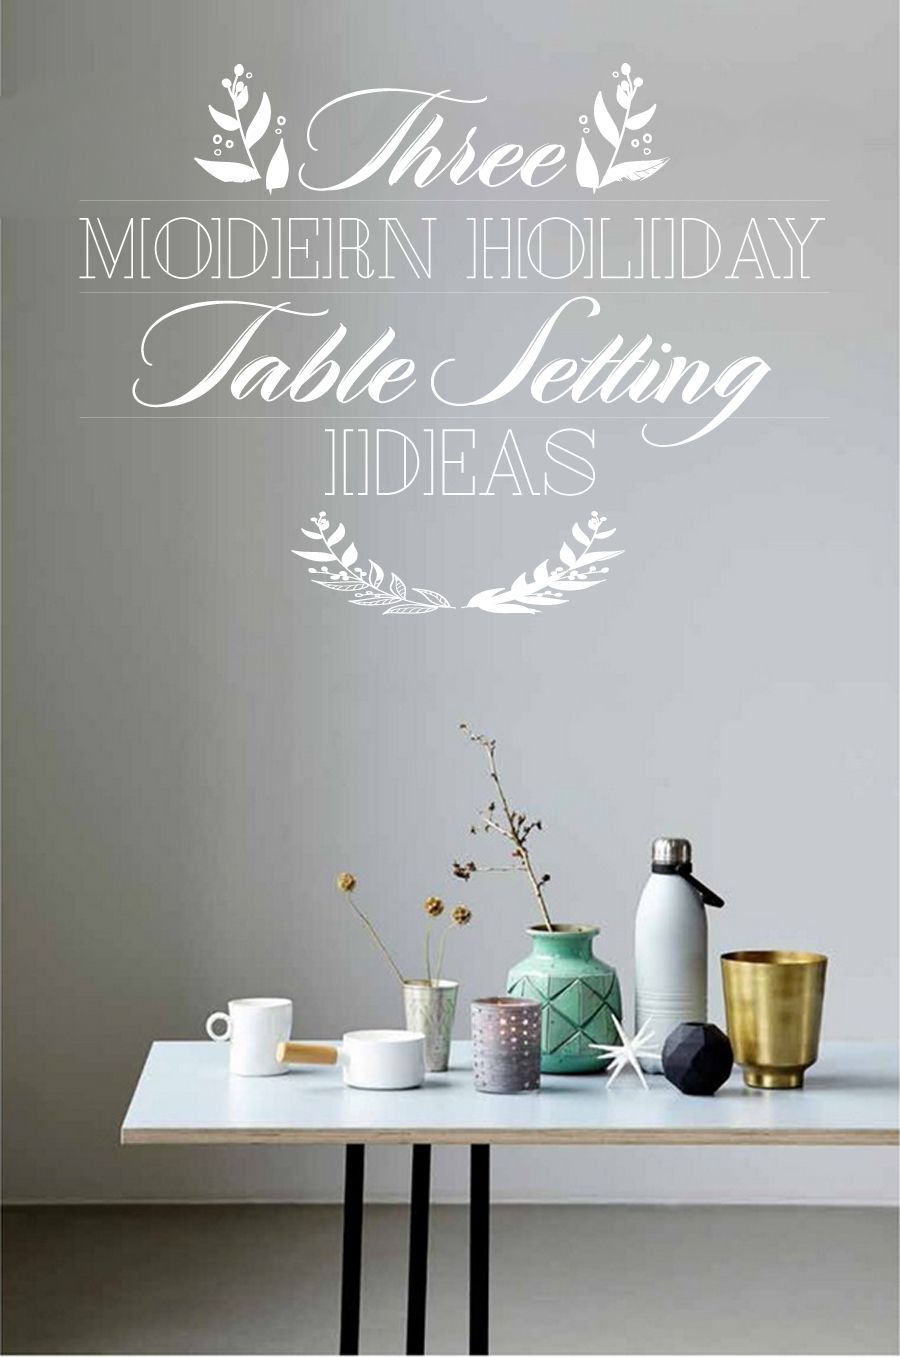 Modern Holiday Table Setting Ideas